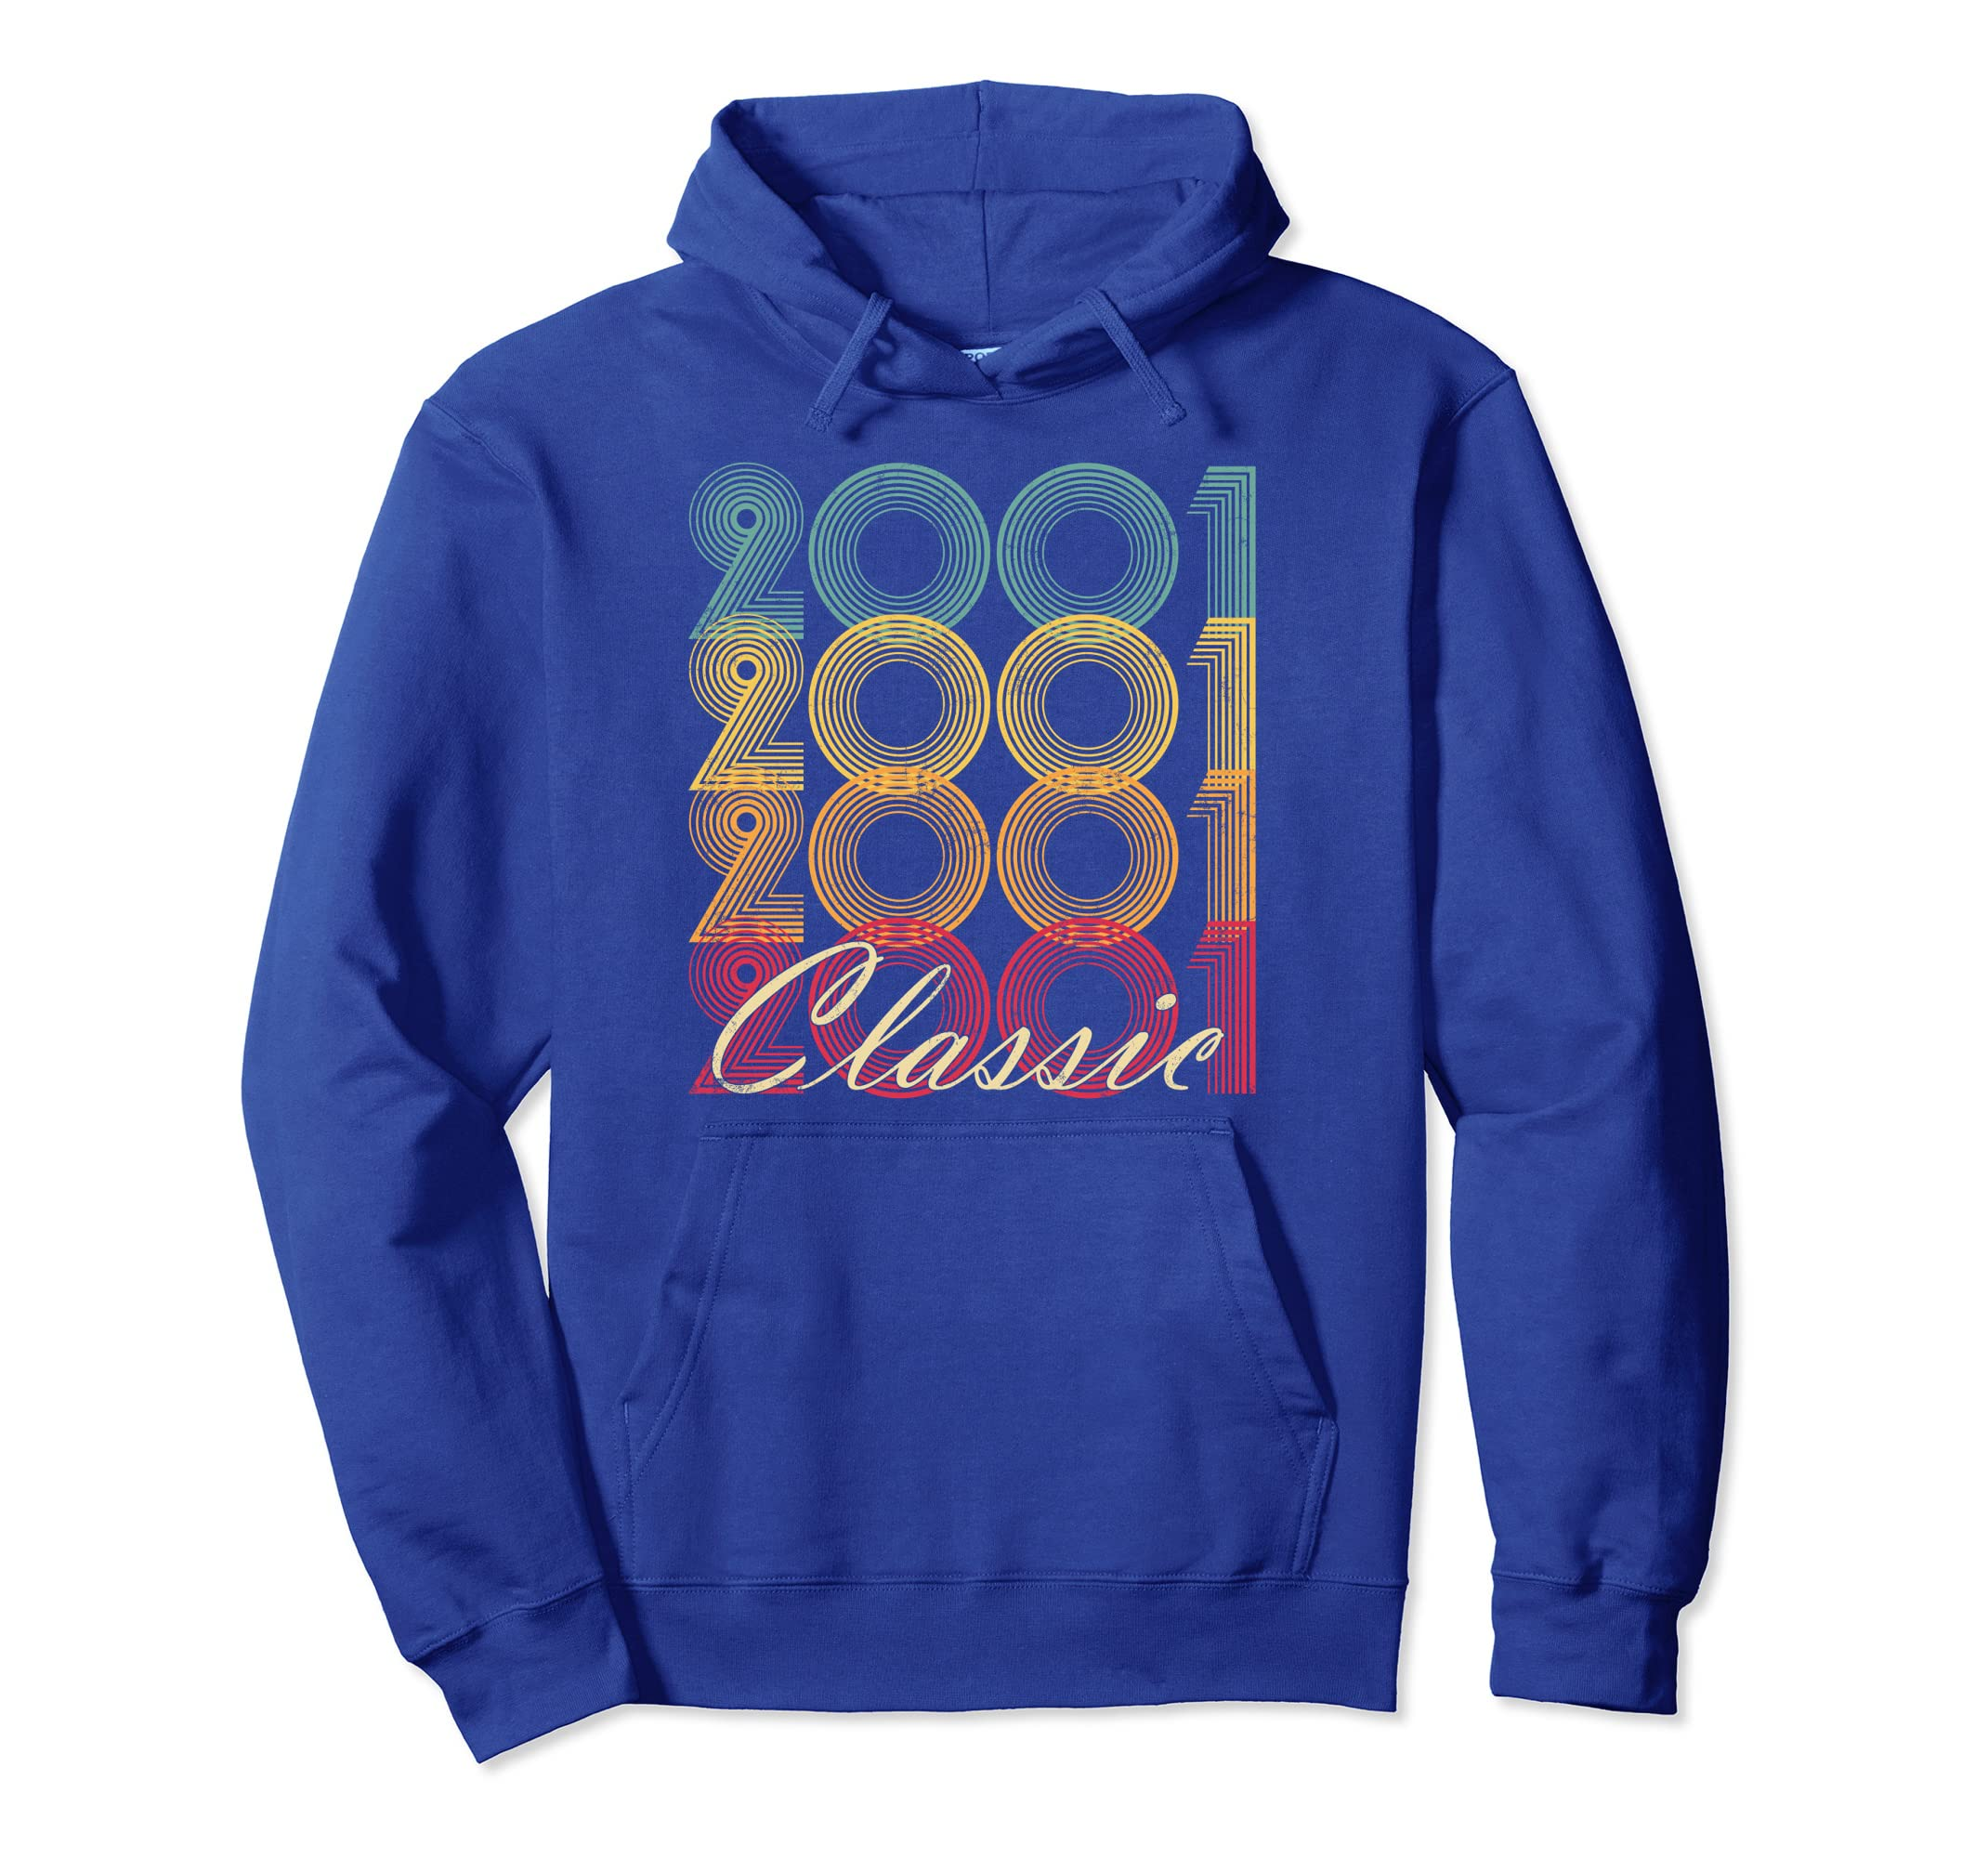 Classic 2001 17th Birthday Vintage Hoodie Retro 17 Gift-4LVS